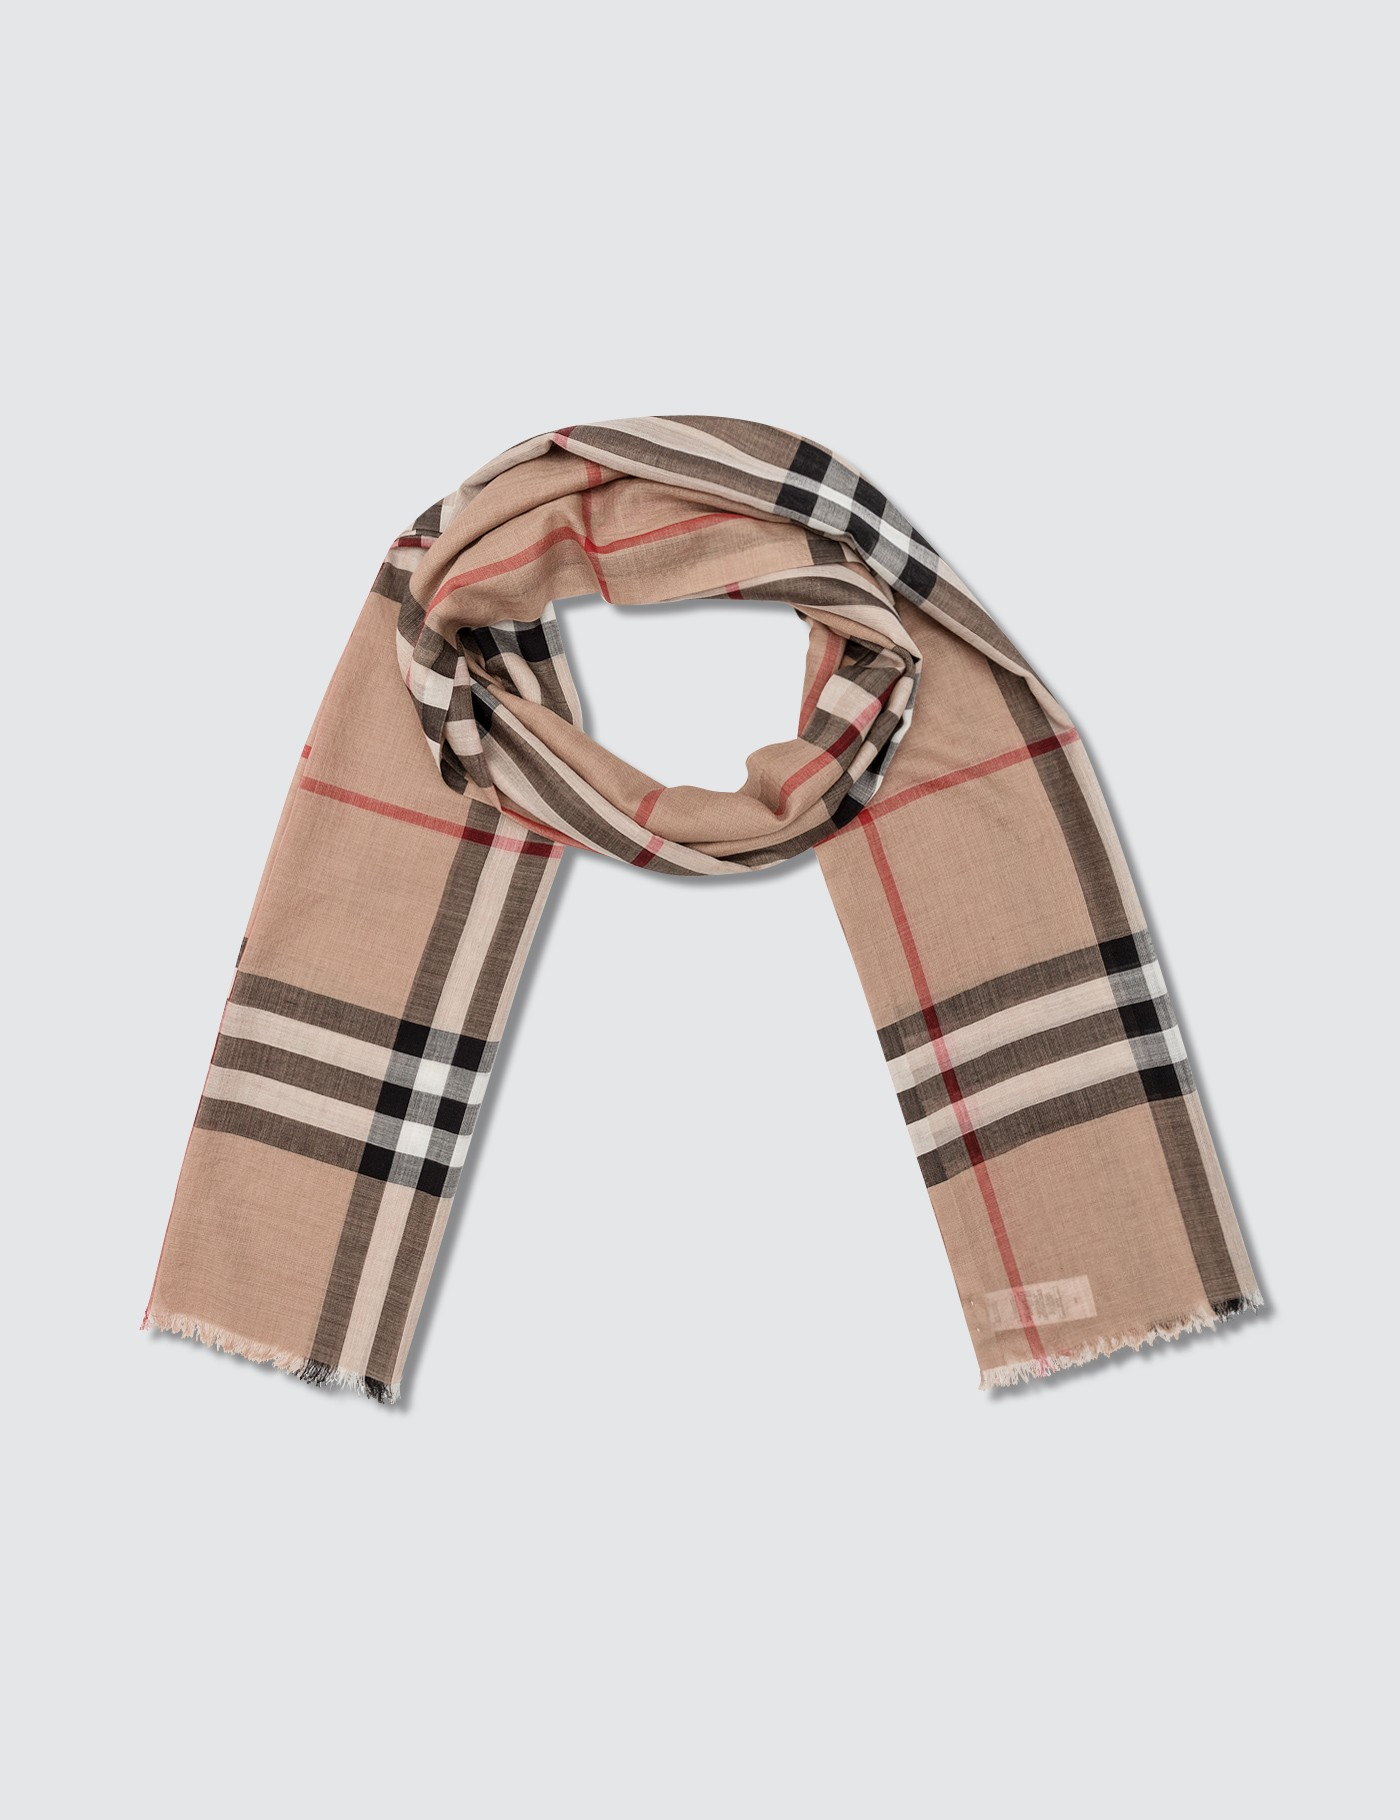 ea6dce1afff93 Buy Original Burberry The Classic Check Cashmere Scarf at Indonesia ...